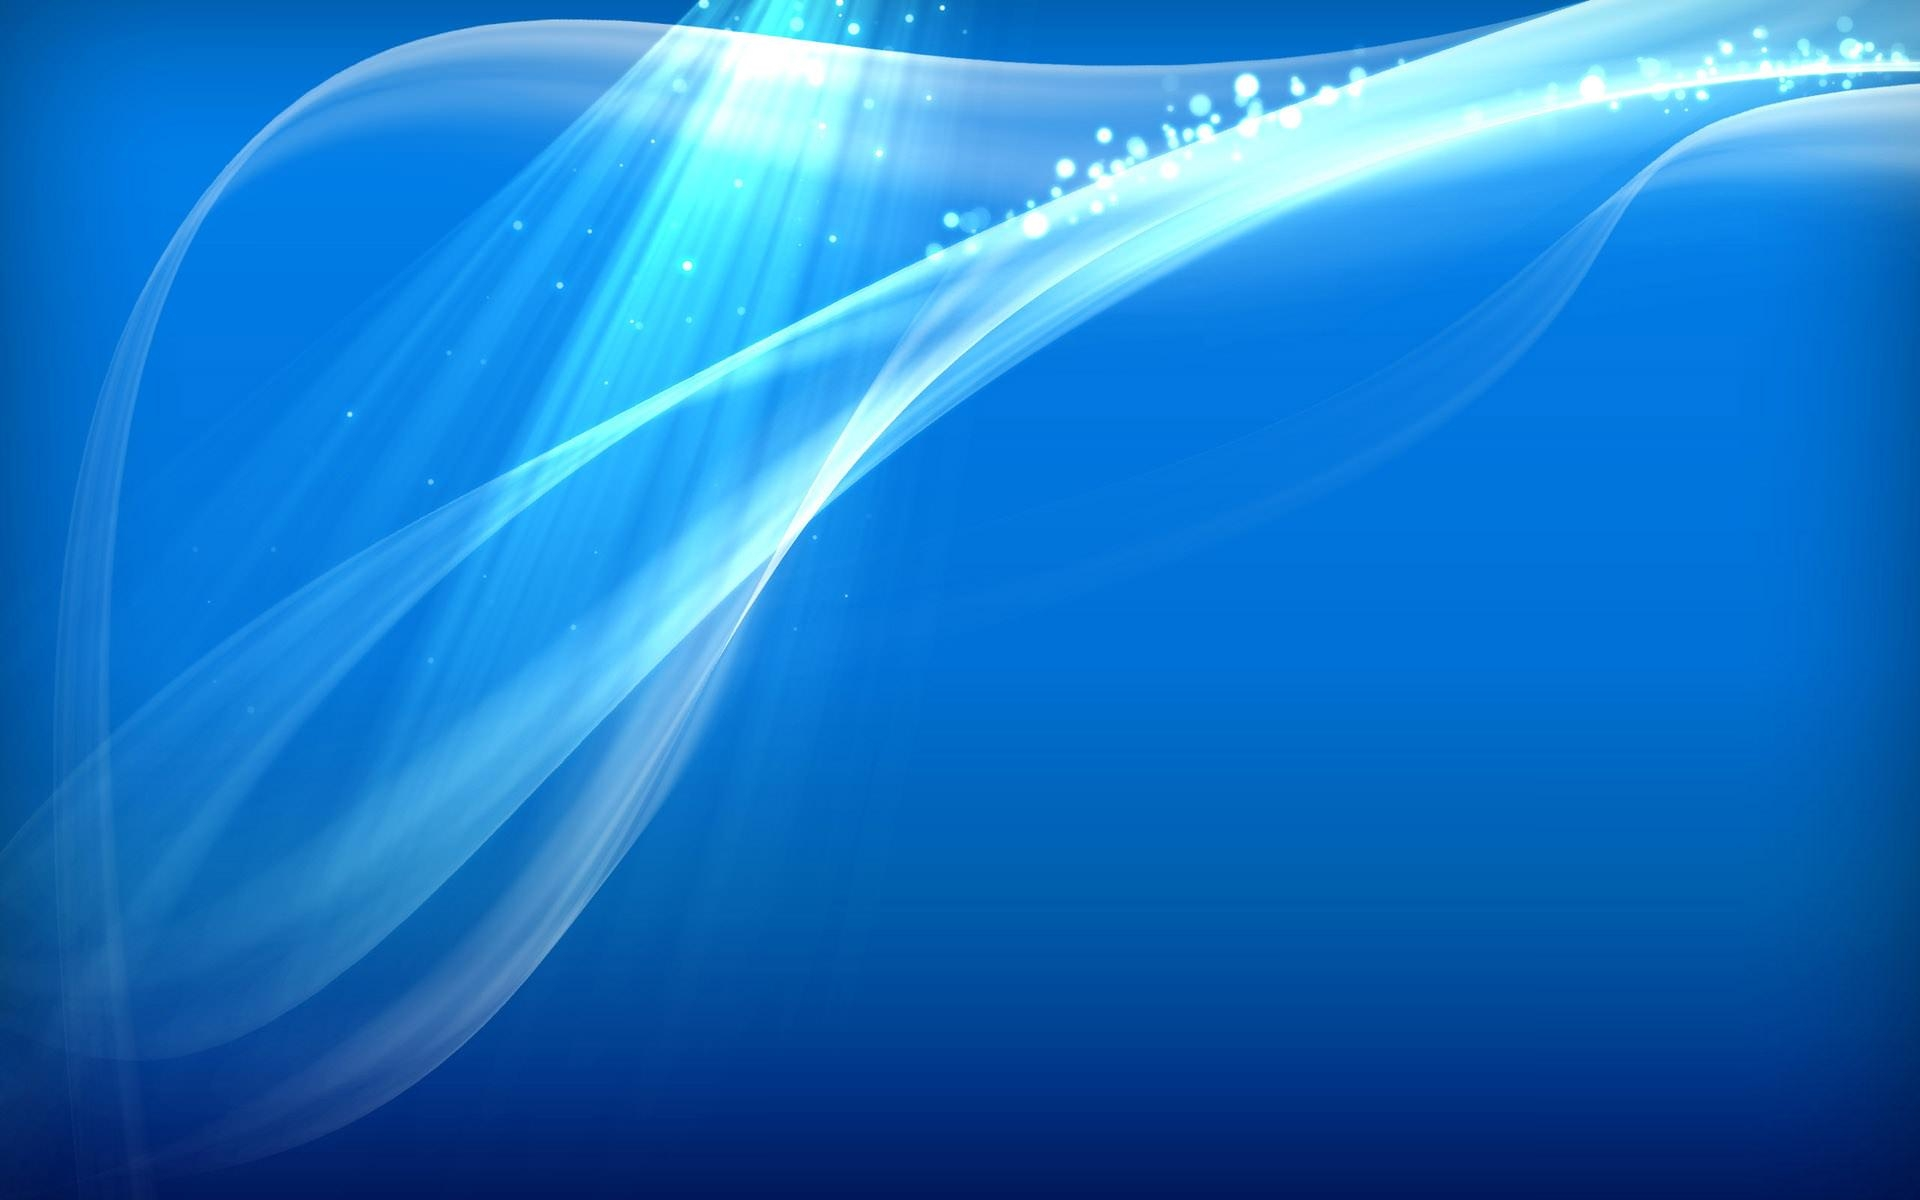 Abstract Blue Wallpaper For Free